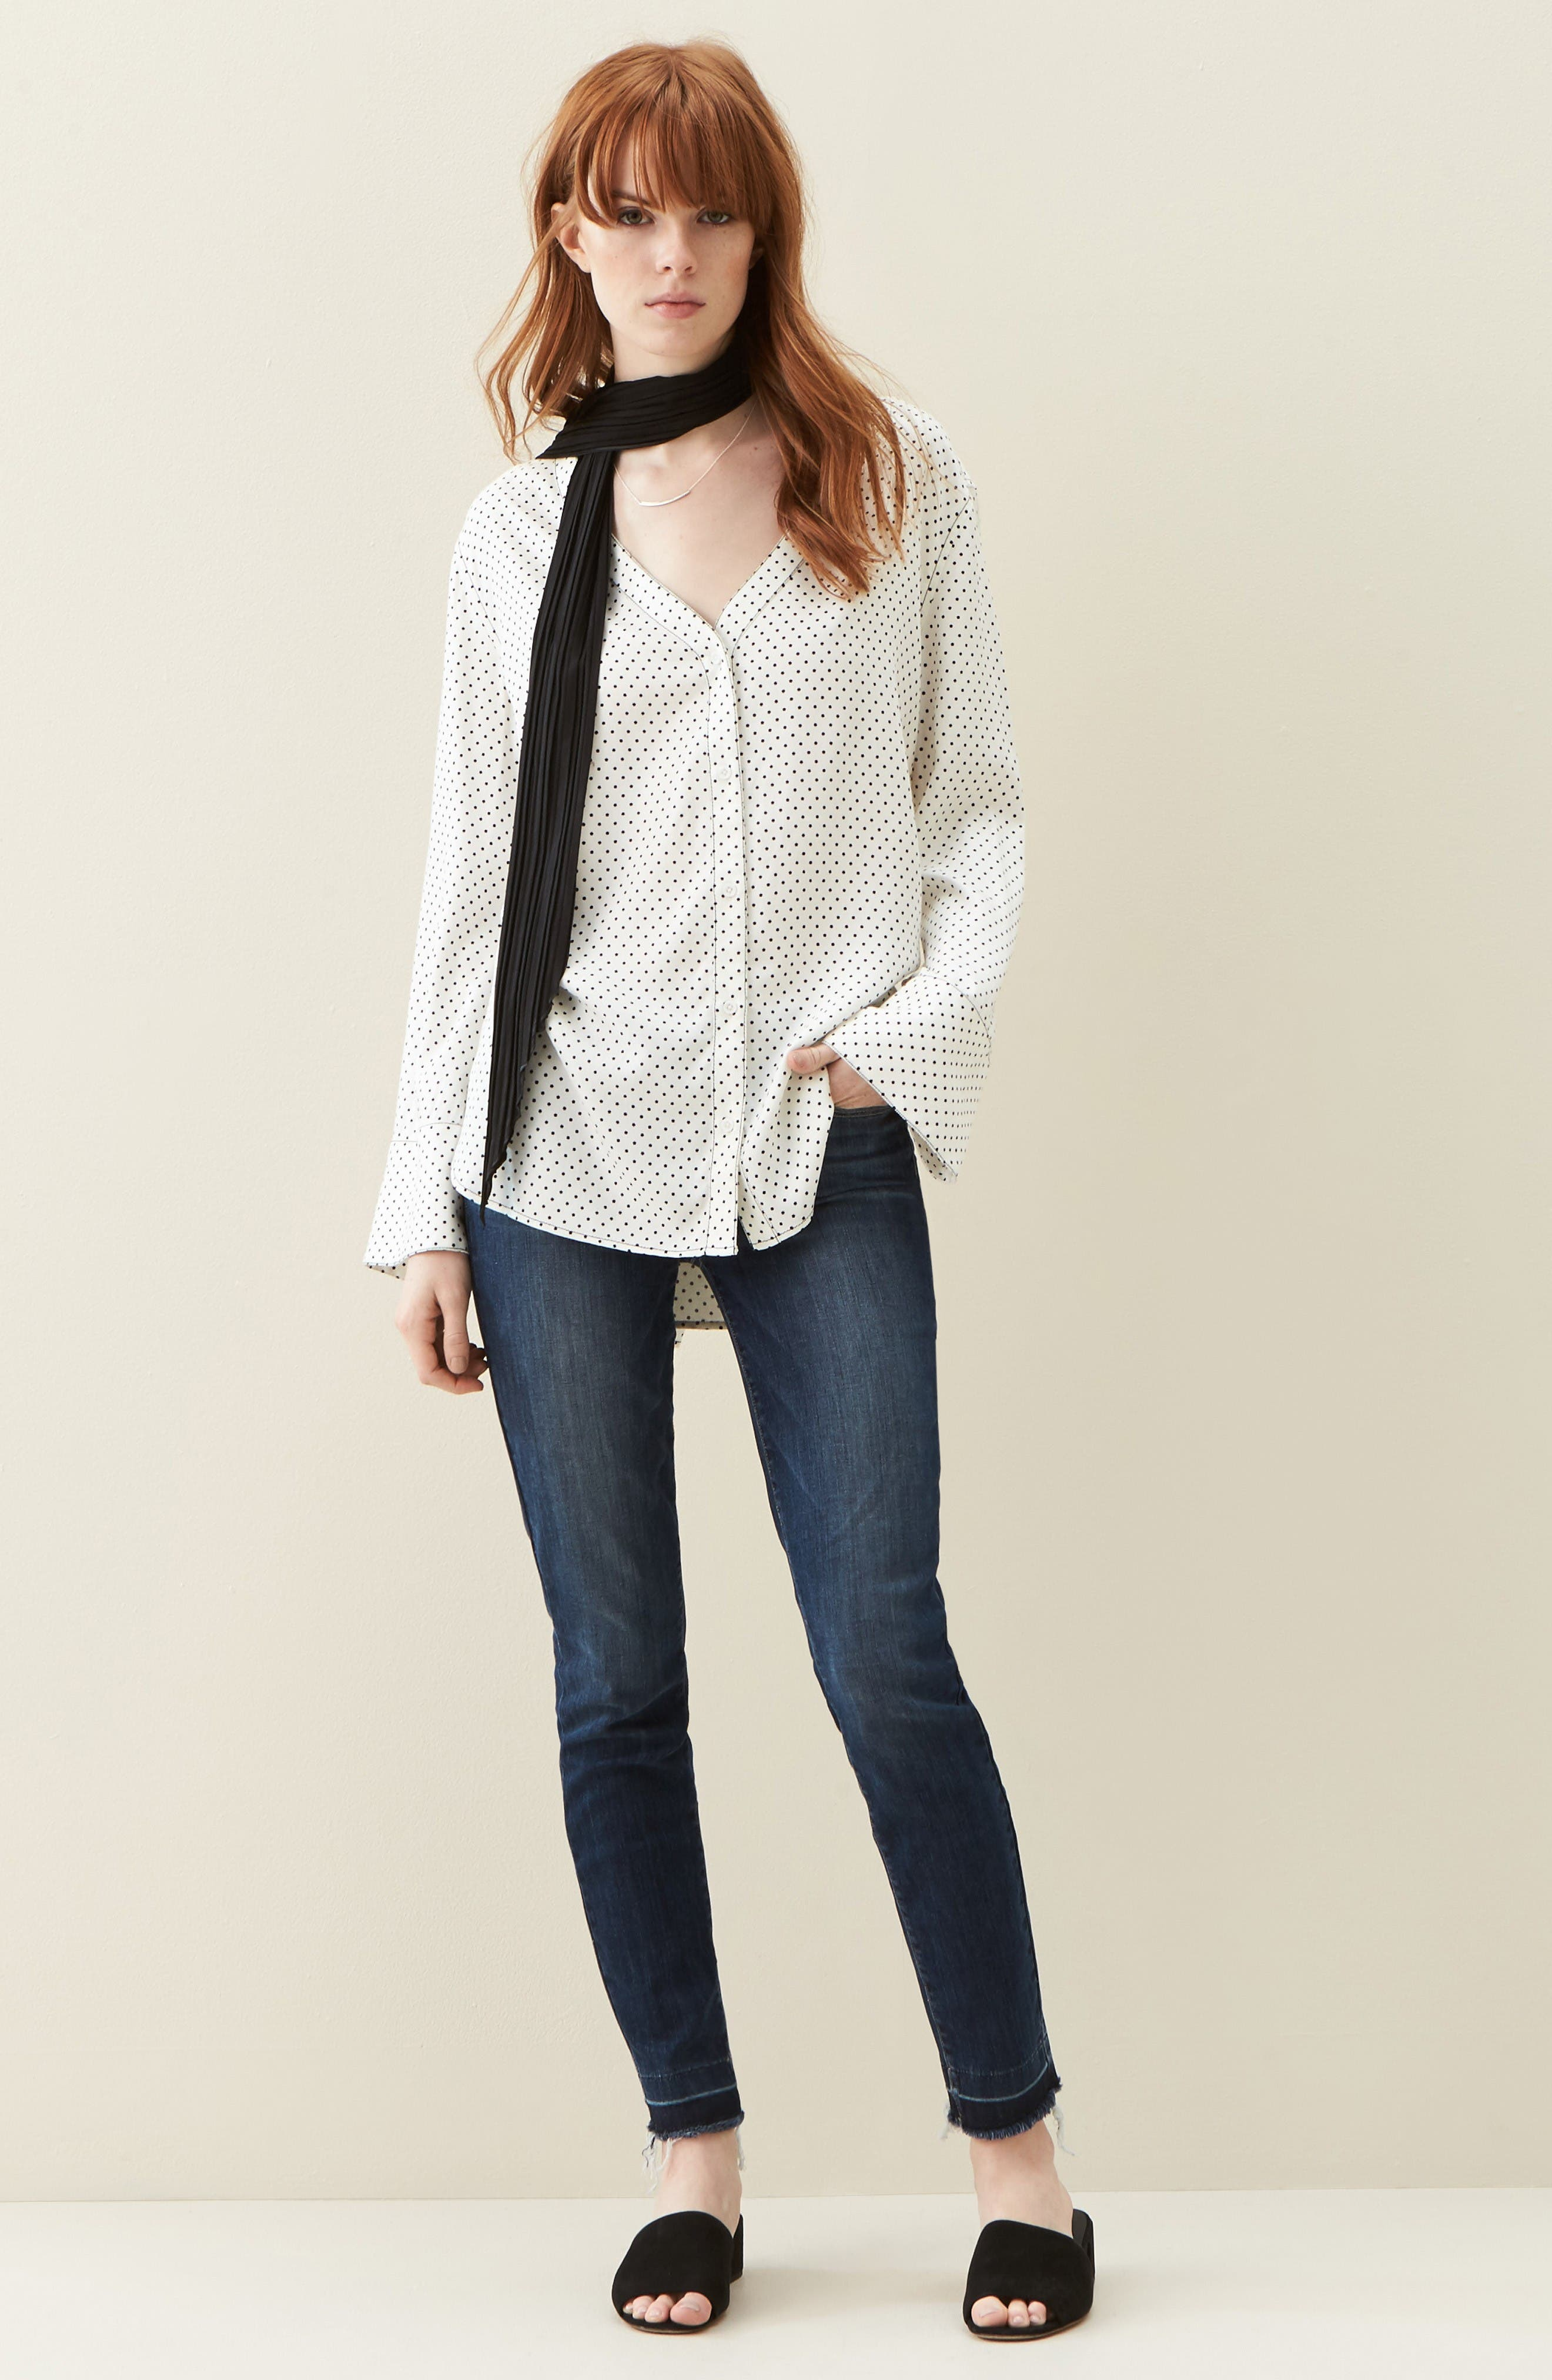 Treasure&Bond Shirt & PAIGE Jeans Outfit with Accessories